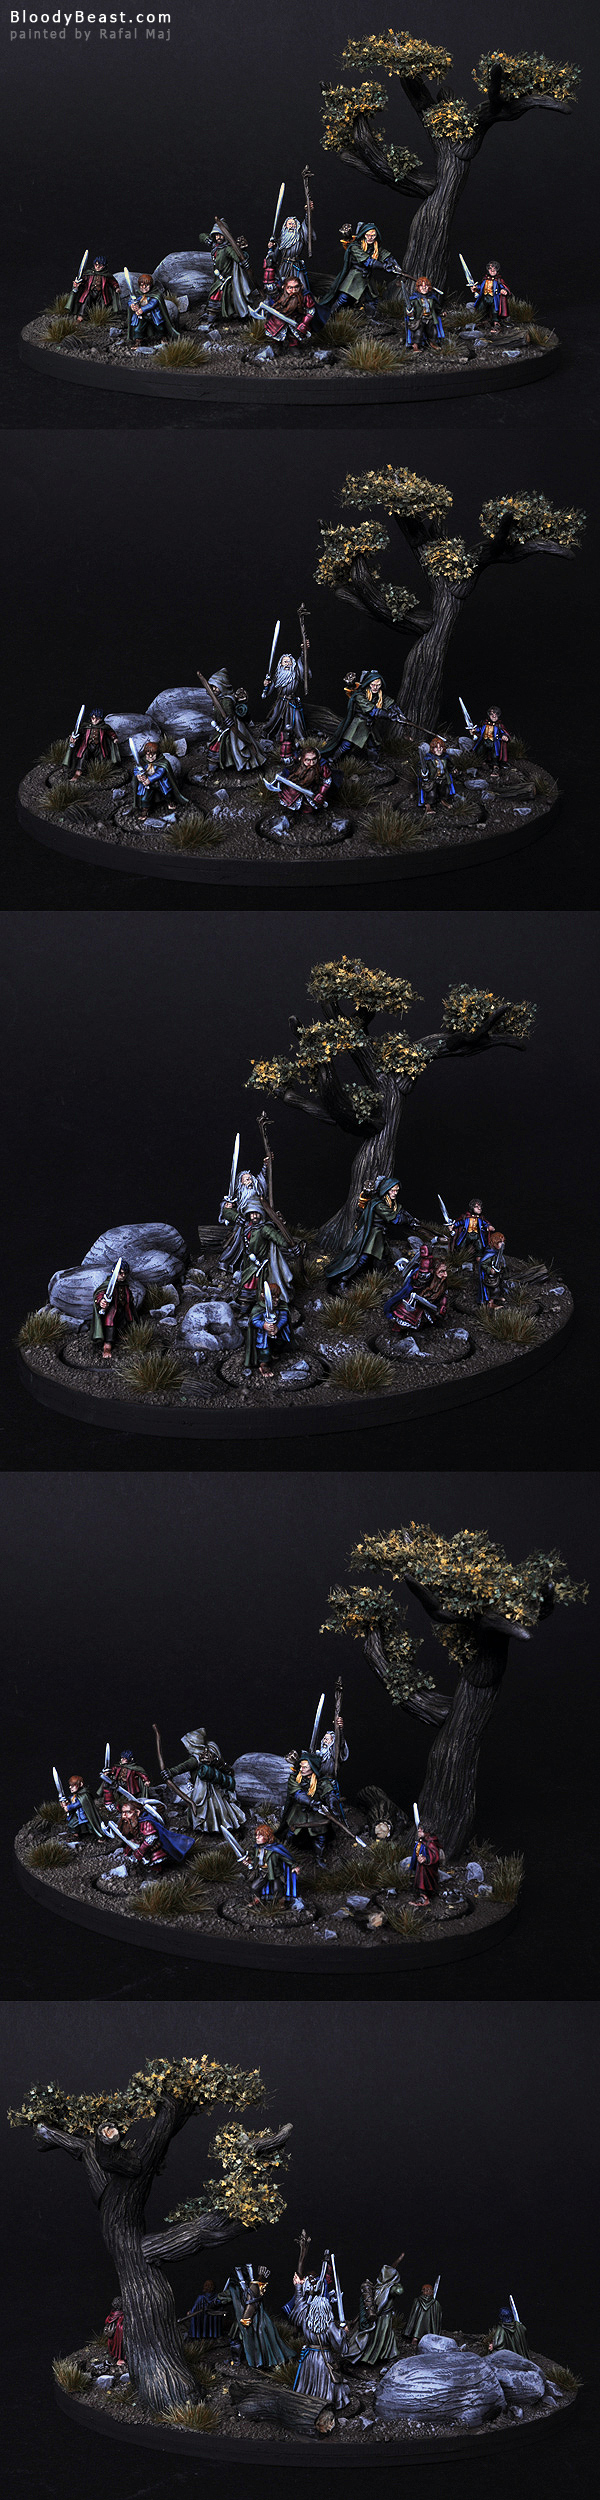 The Fellowship of the Ring painted by Rafal Maj (BloodyBeast.com)